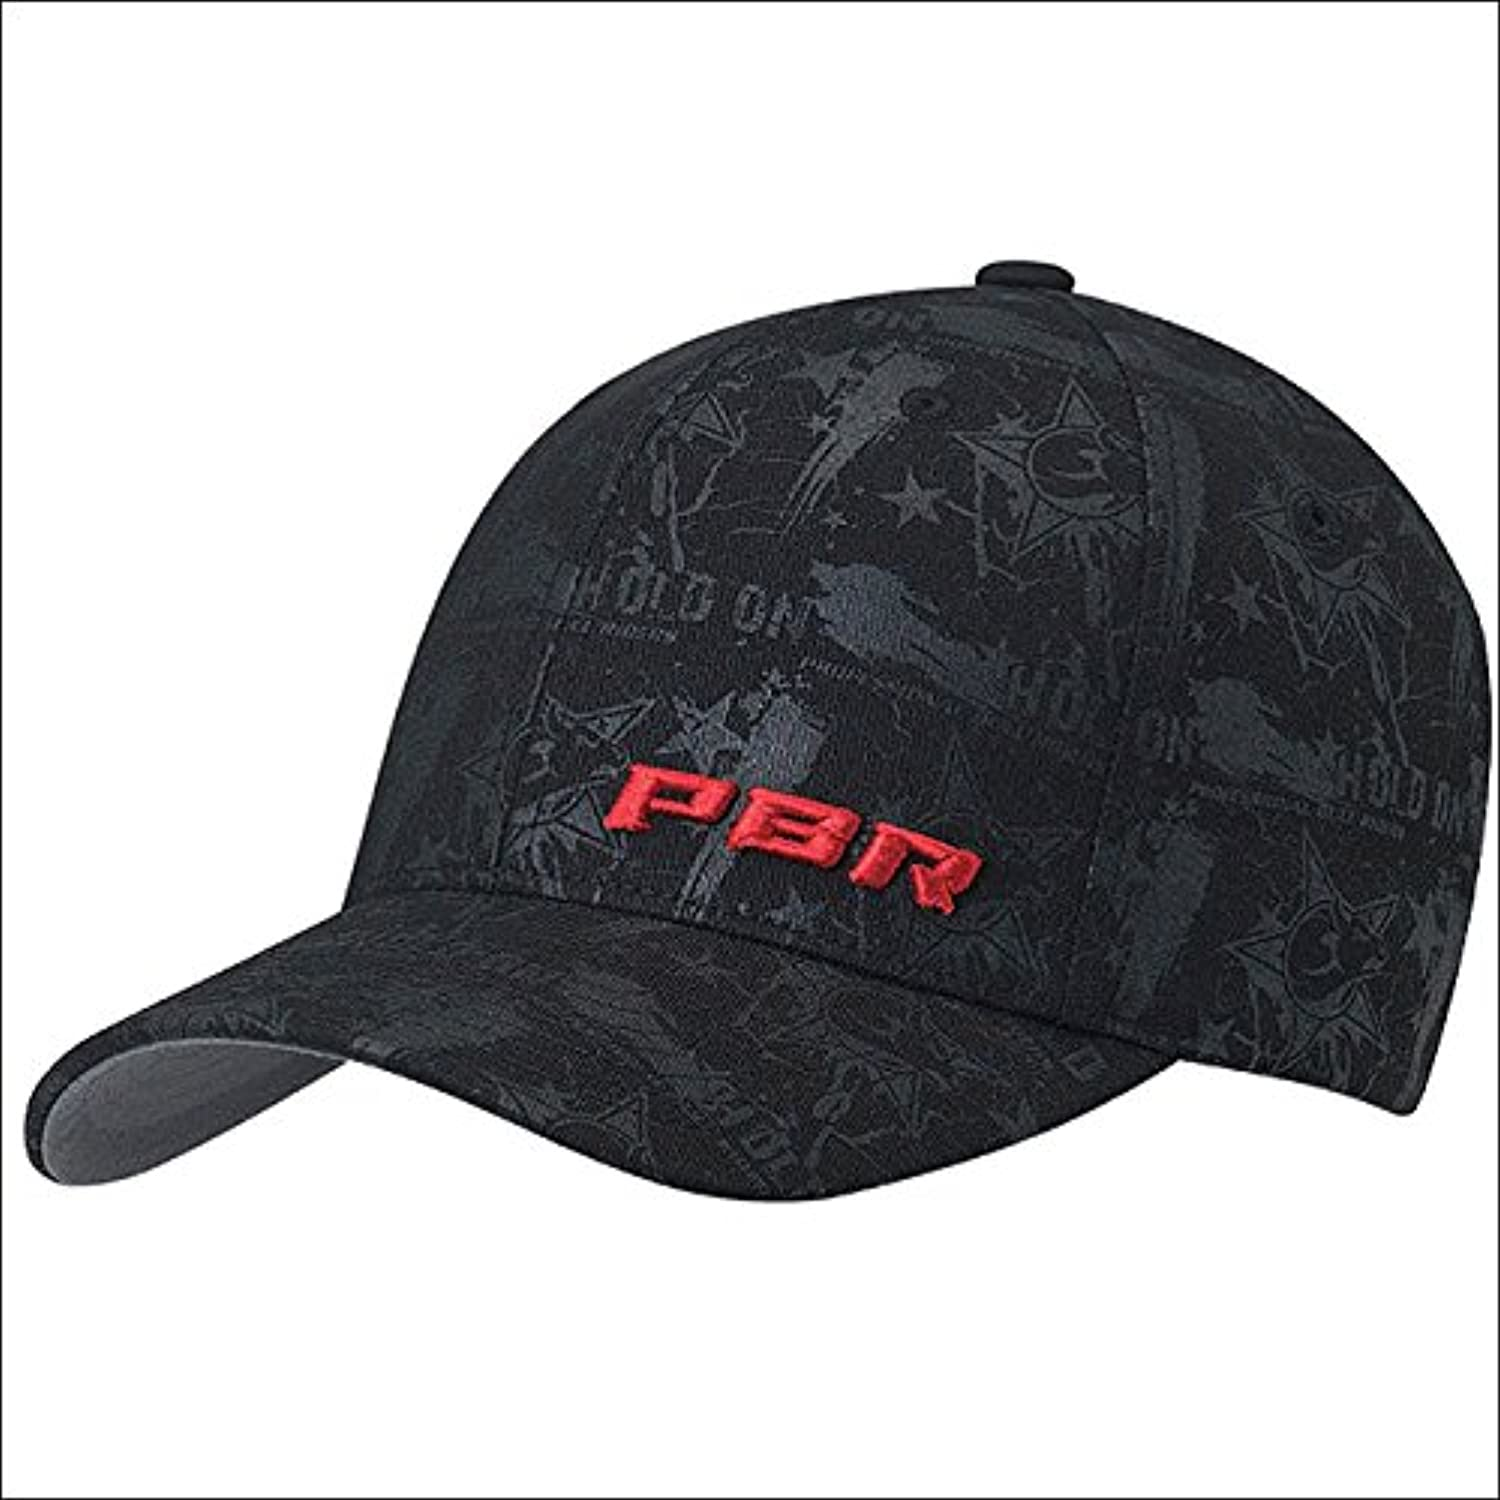 EXTRA LARGE ADJUSTABLE PBR LOGO MENS COWBOY FLEX FIT HOLD ON BASEBALL CAP